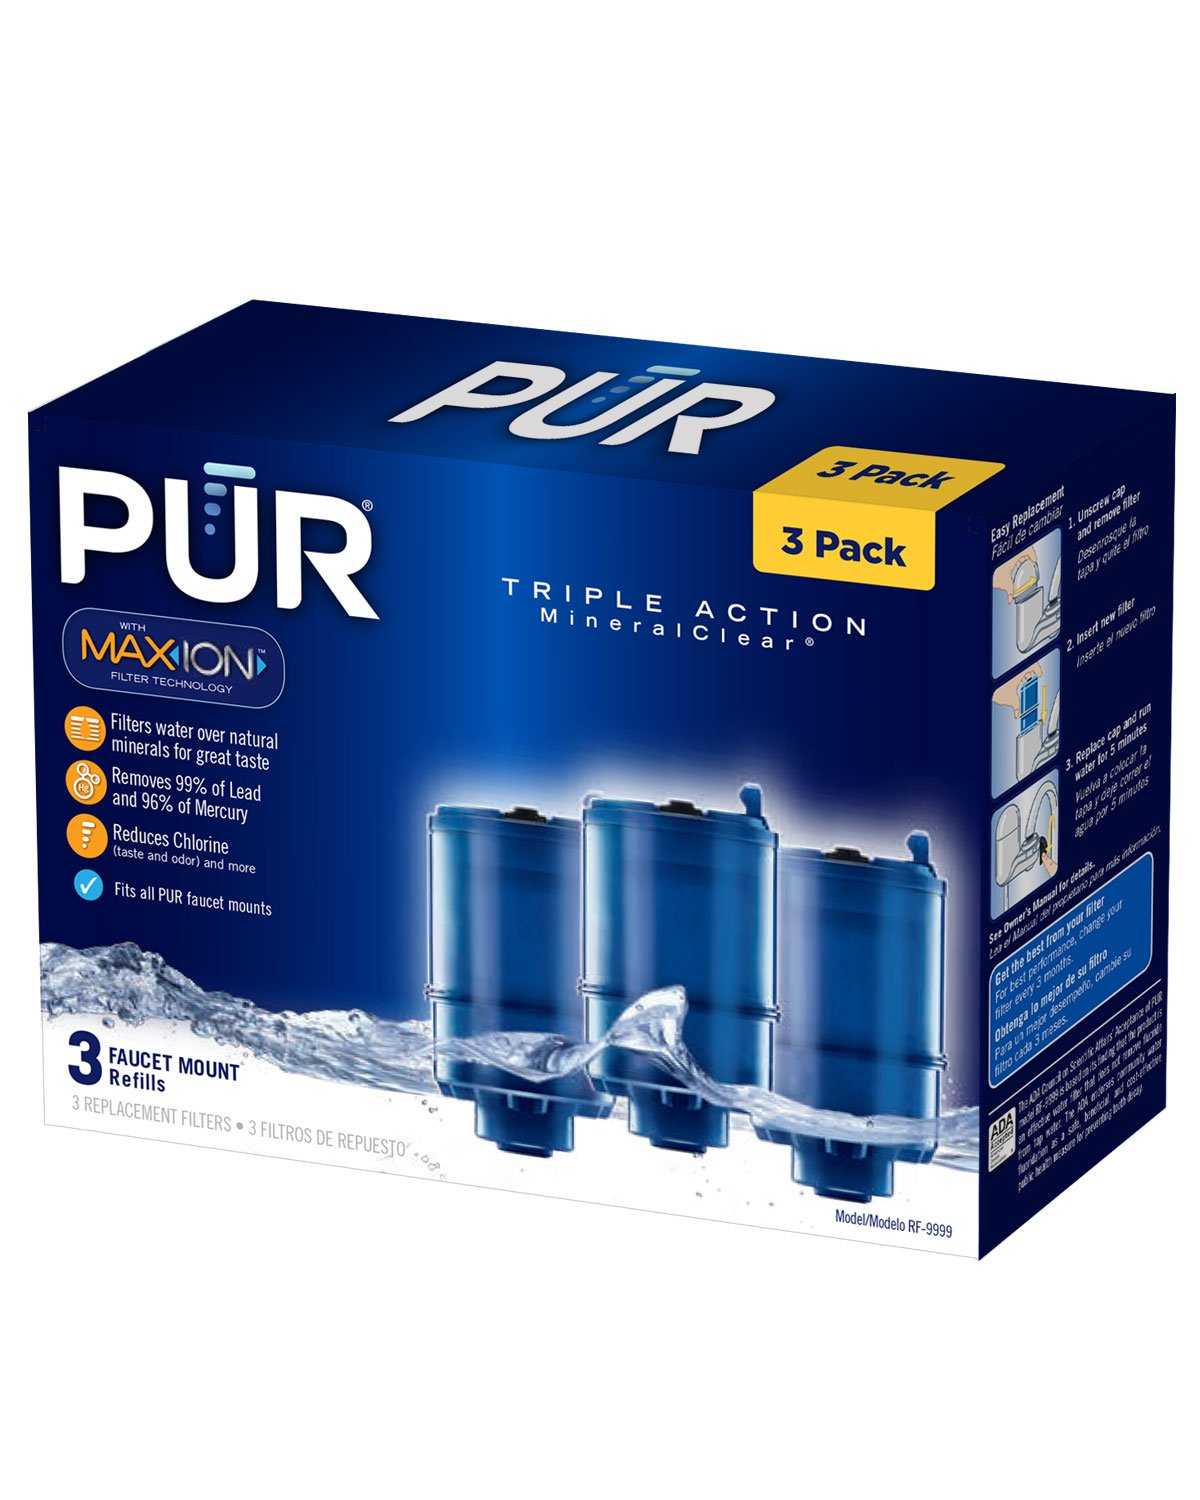 PUR RF-9999-3 MineralClear Faucet Replacement Water Filter Refill, 3-Pack by PUR (Image #2)